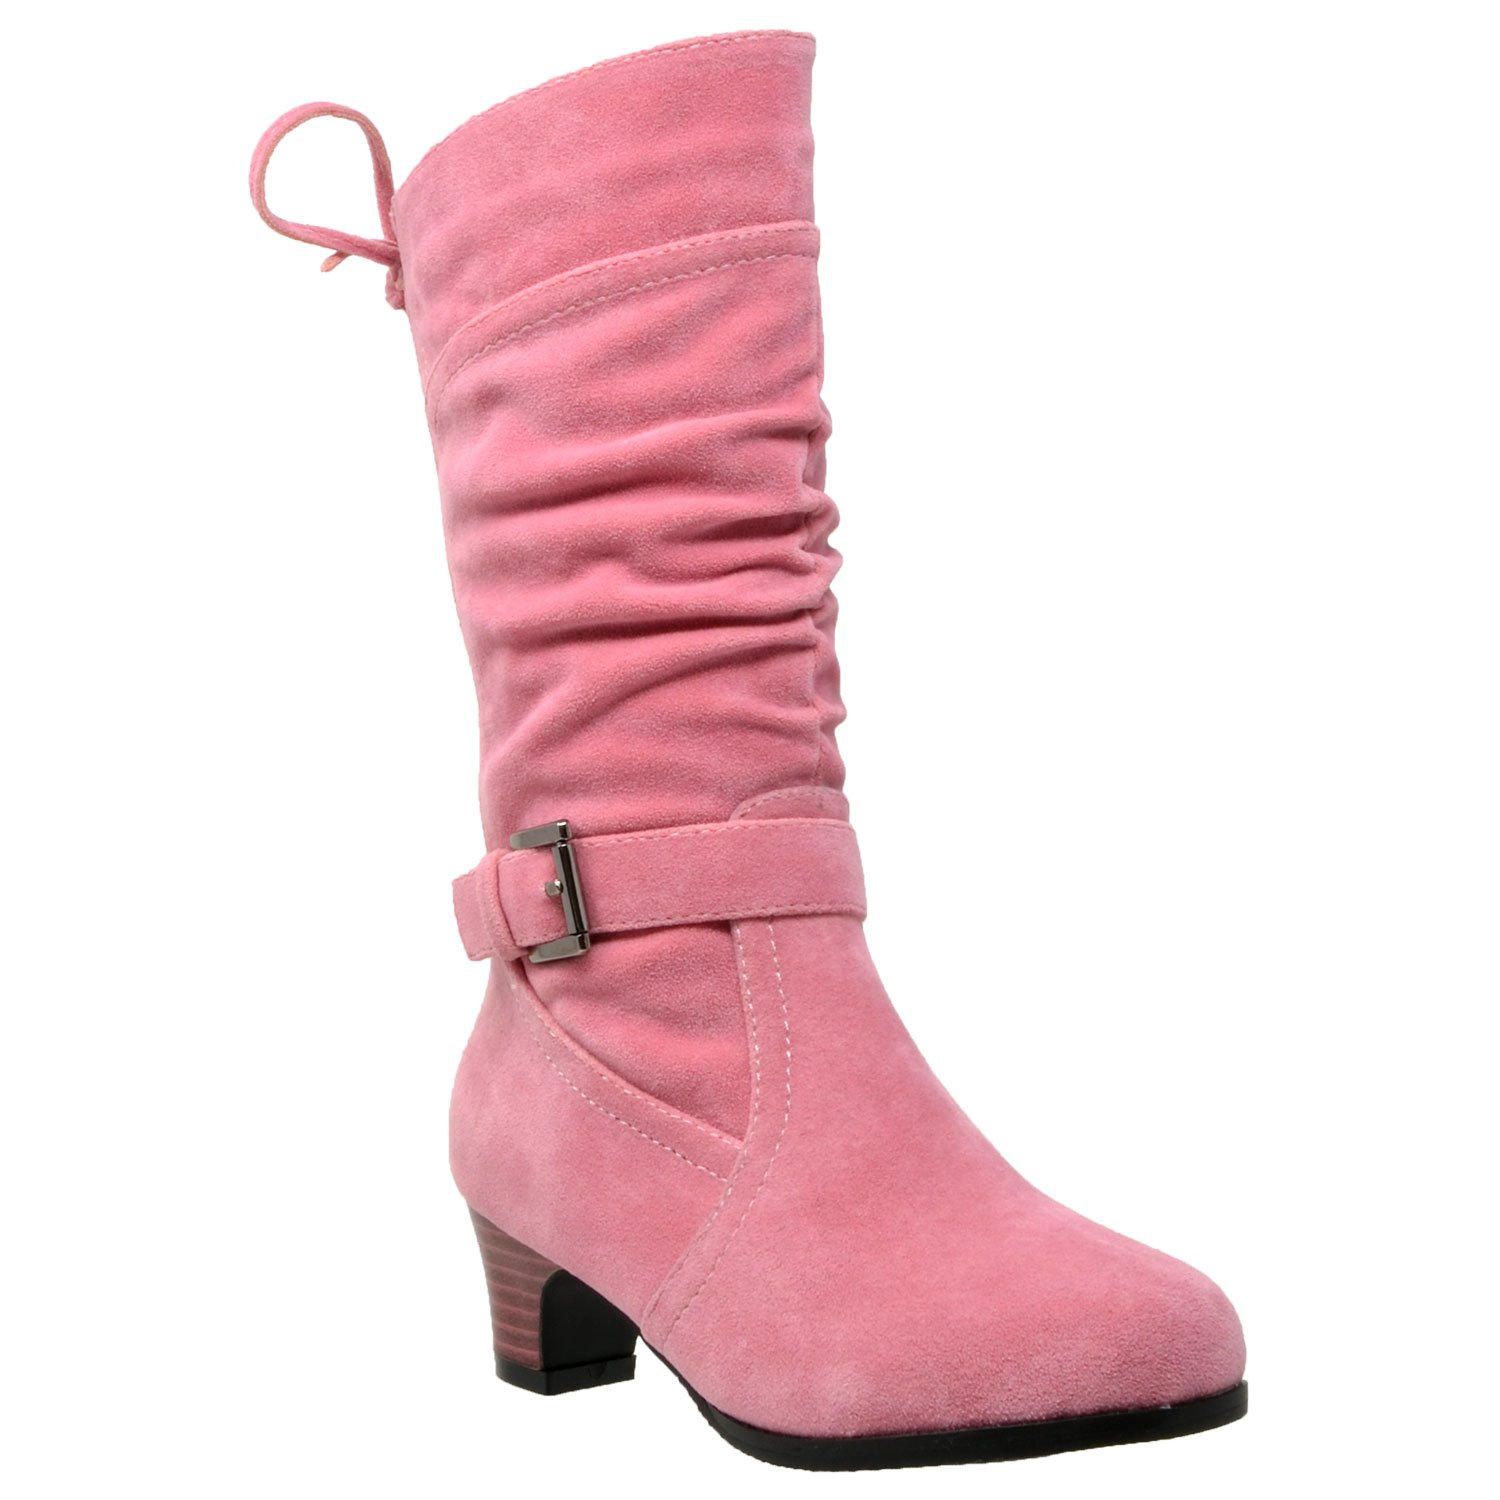 14976573362e Galleon - Generation Y Kids Knee High Boots Corset Lace Up Back Buckle  Strap Low Heel Shoes Coral SZ 11 Toddler